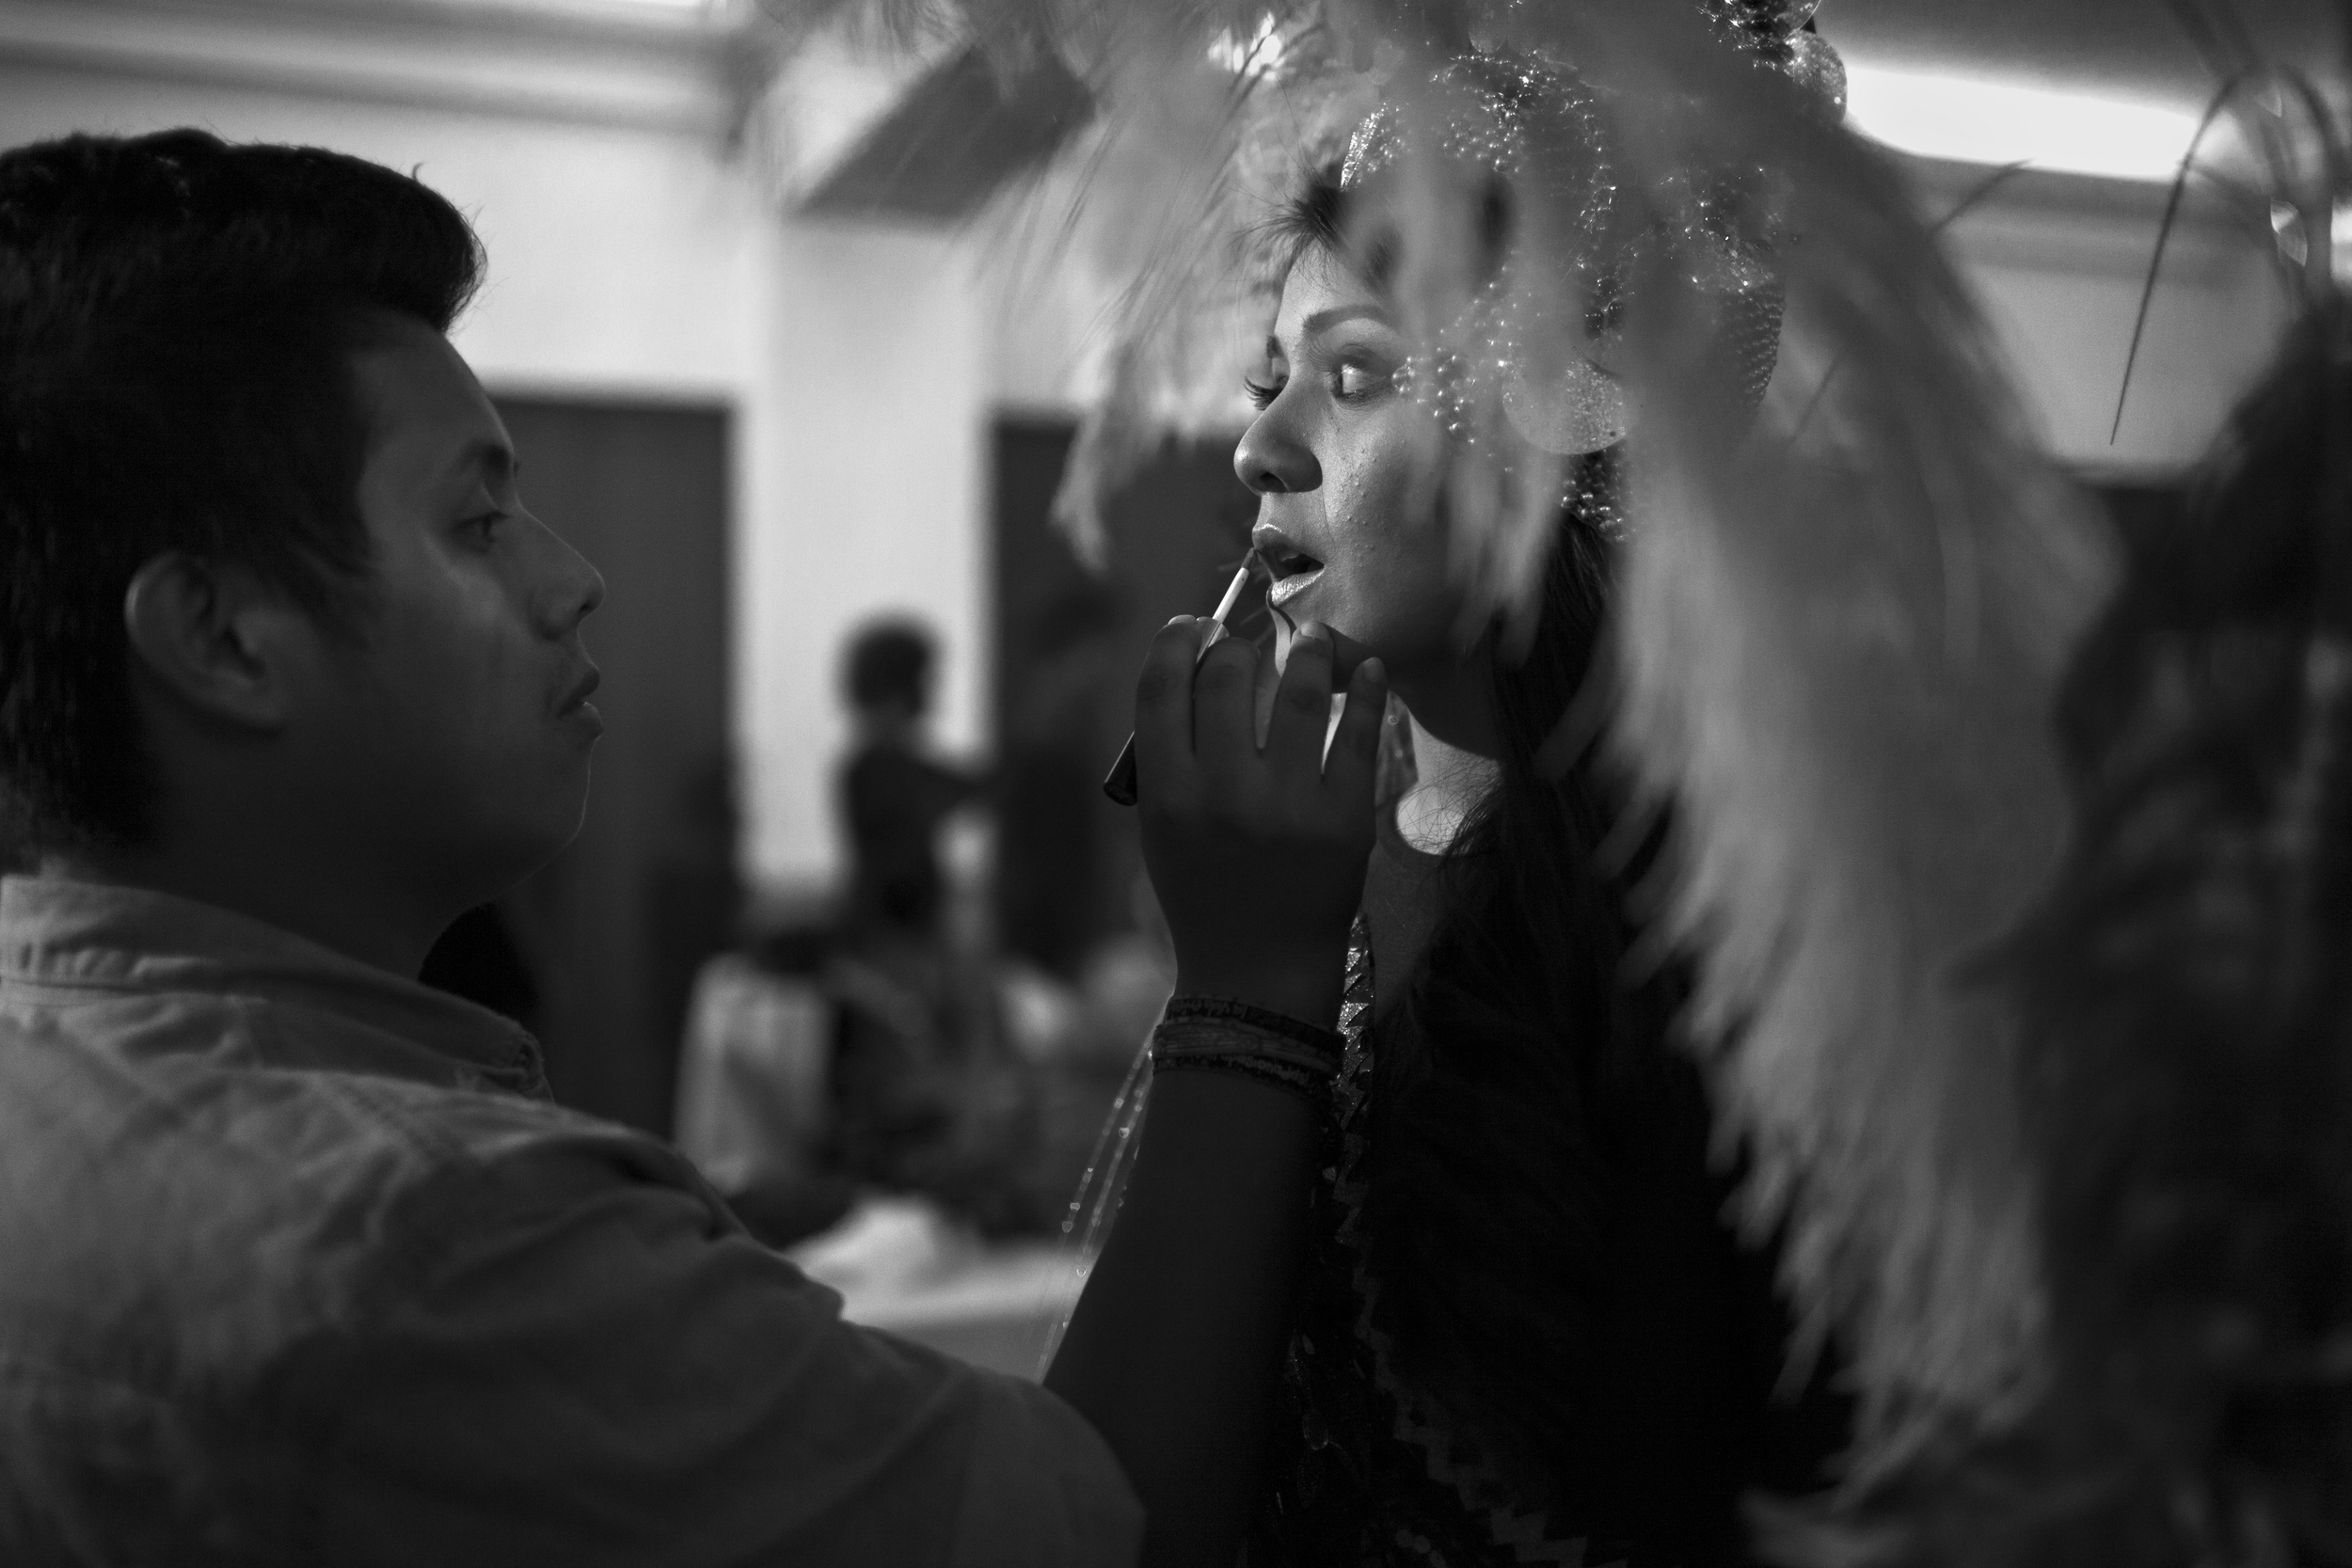 Juliet Gordillo adds some last minute touches before the 2014 Miss Antigua beauty pageant. The winner will compete in the Miss Guatemala beauty pageant. Antigua, Guatemala. .